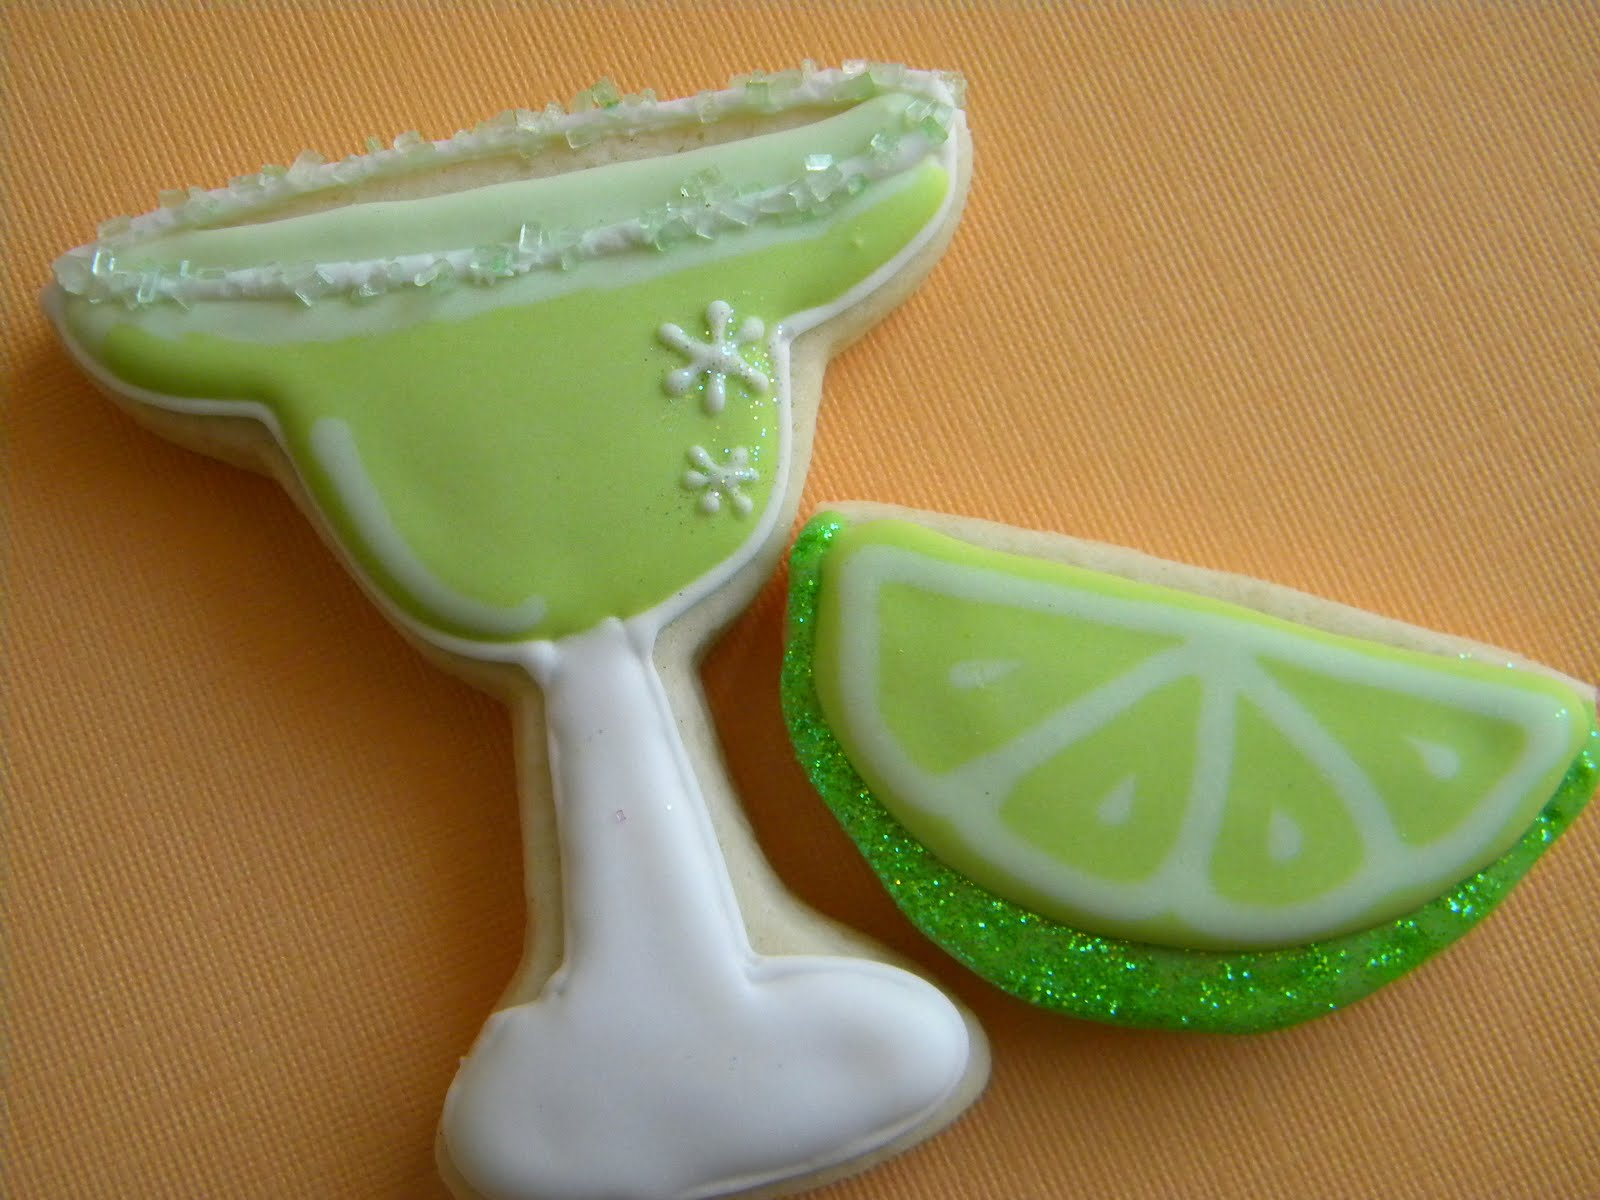 Next time I'm making some tequila shots to go with! :)